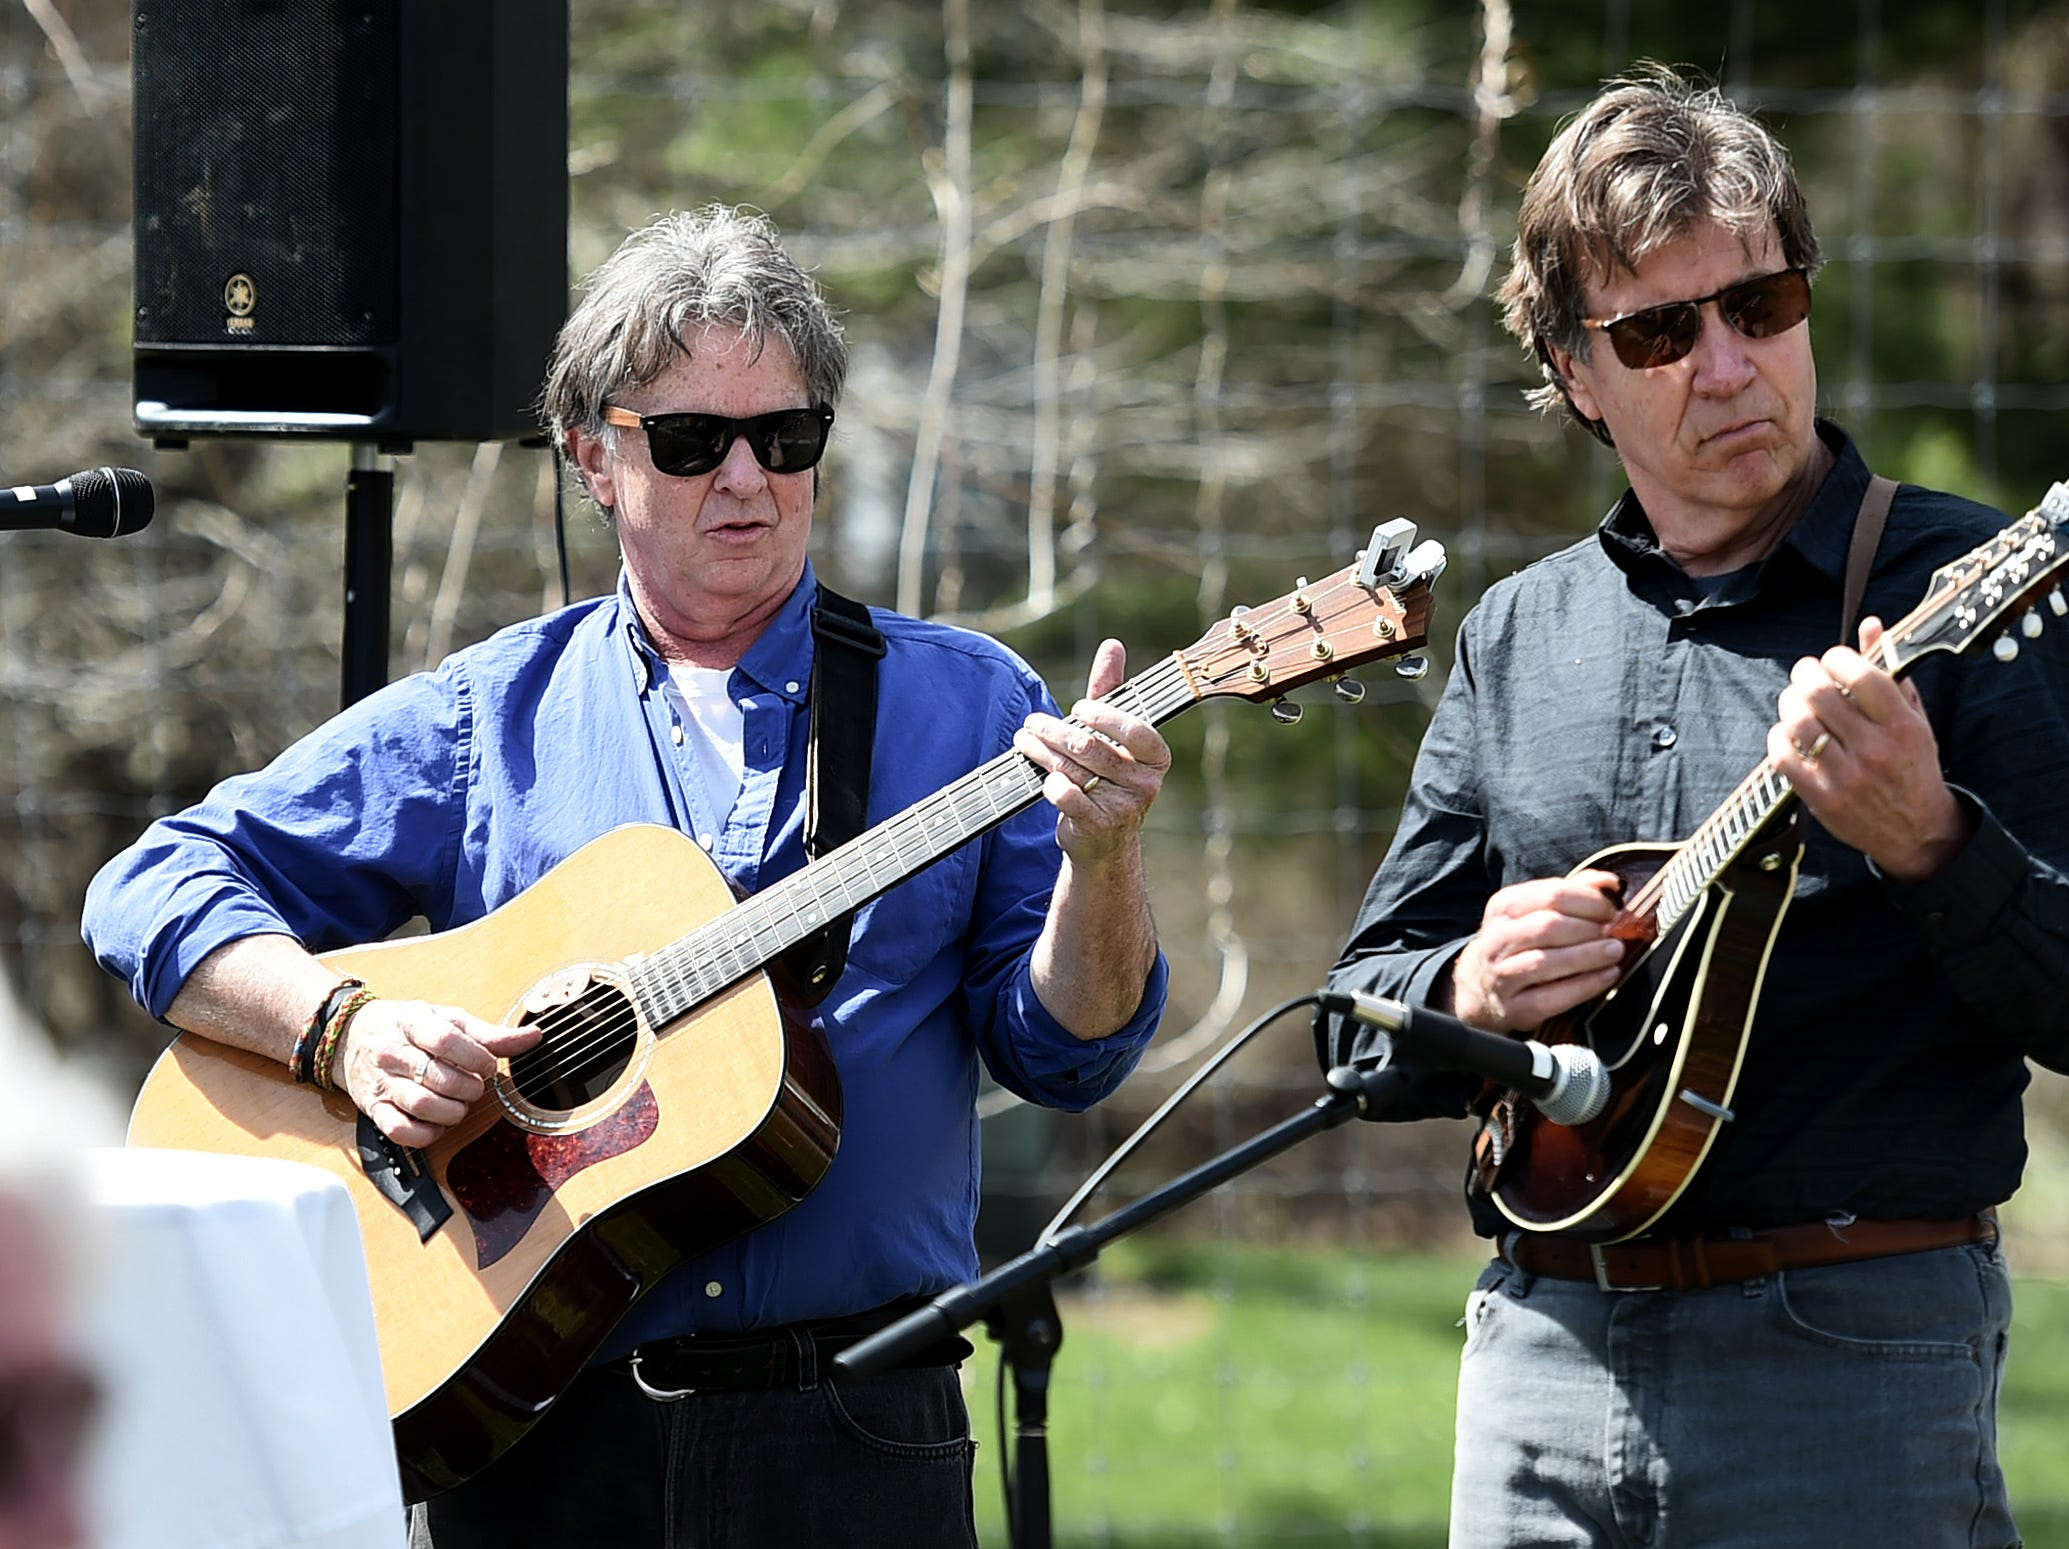 John Simon and Rick Manning open the celebration of life honoring Kathleen Downes with music at the Ithaca Children's Garden on April 17, 2019.